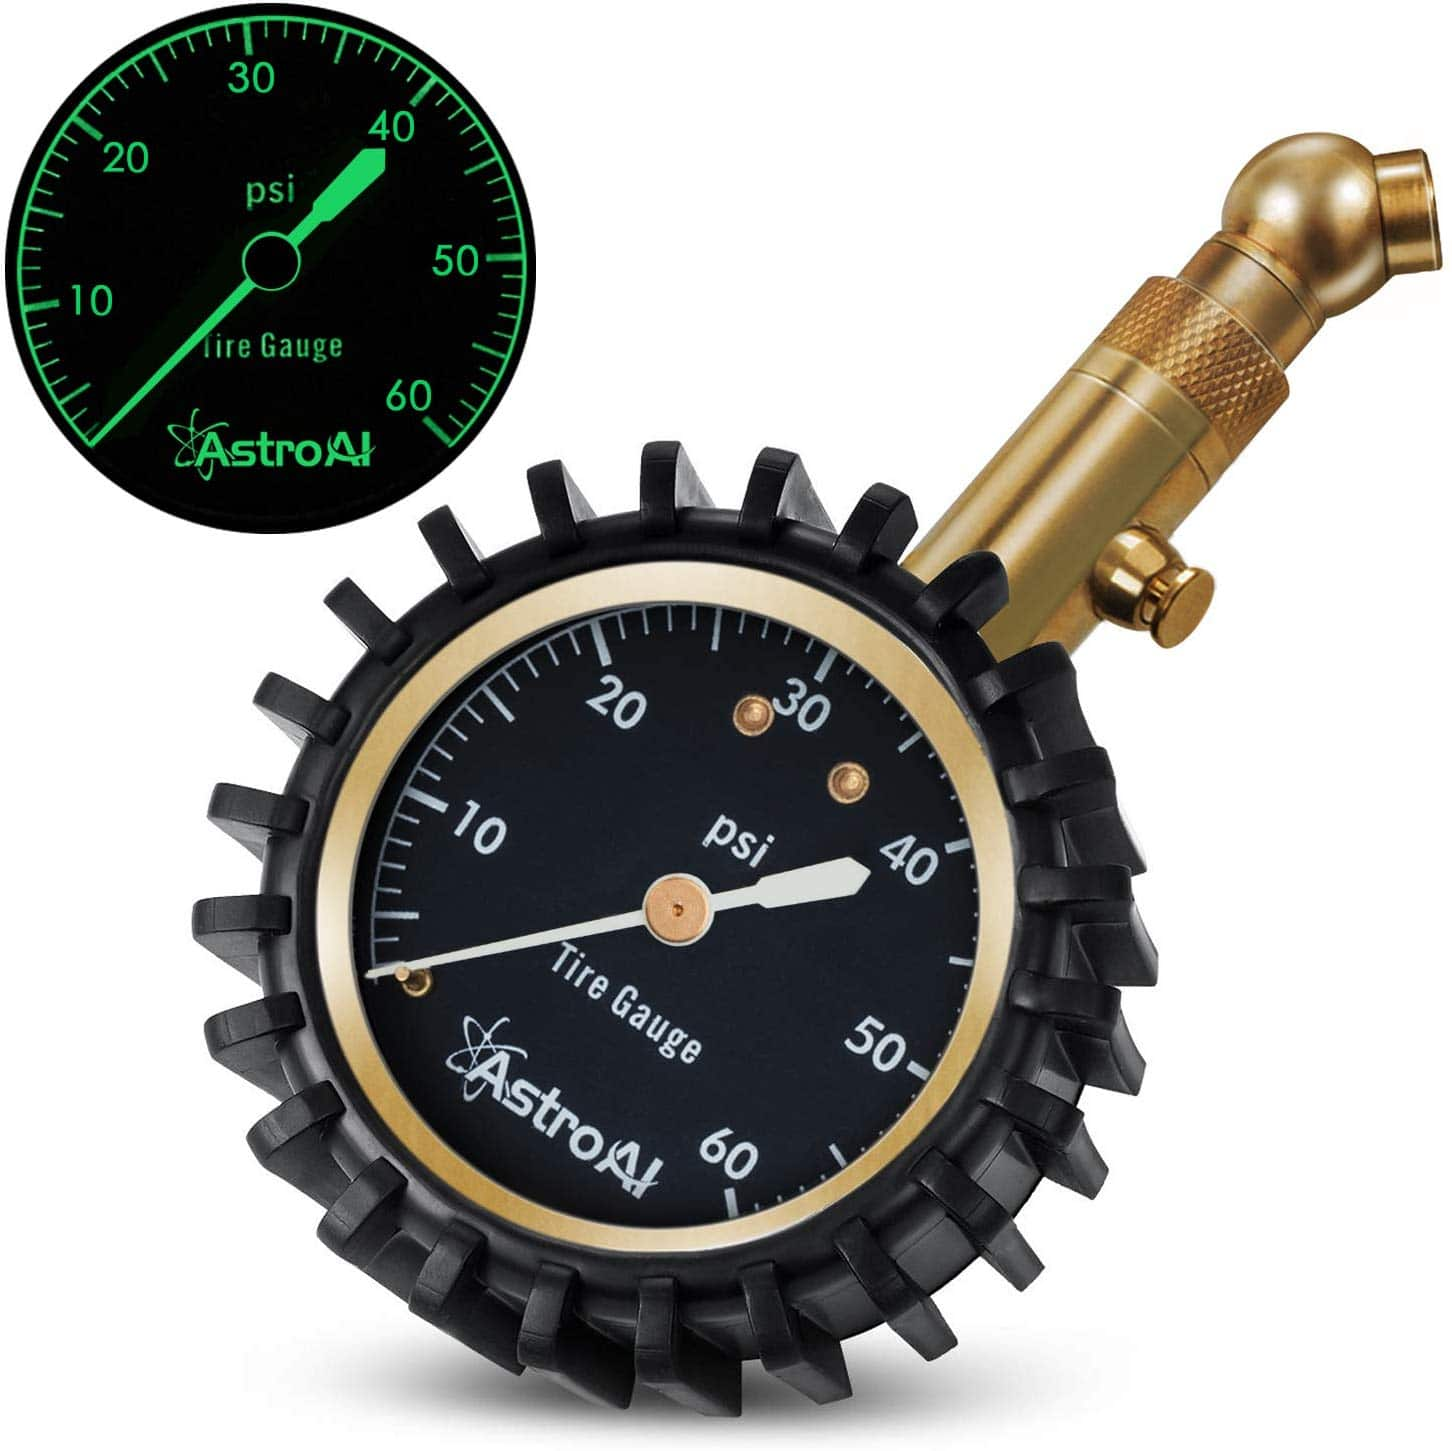 Tire Pressure Gauge, 60 PSI Portable Heavy Duty with Glow Dial and Solid Brass Construction - $9.49